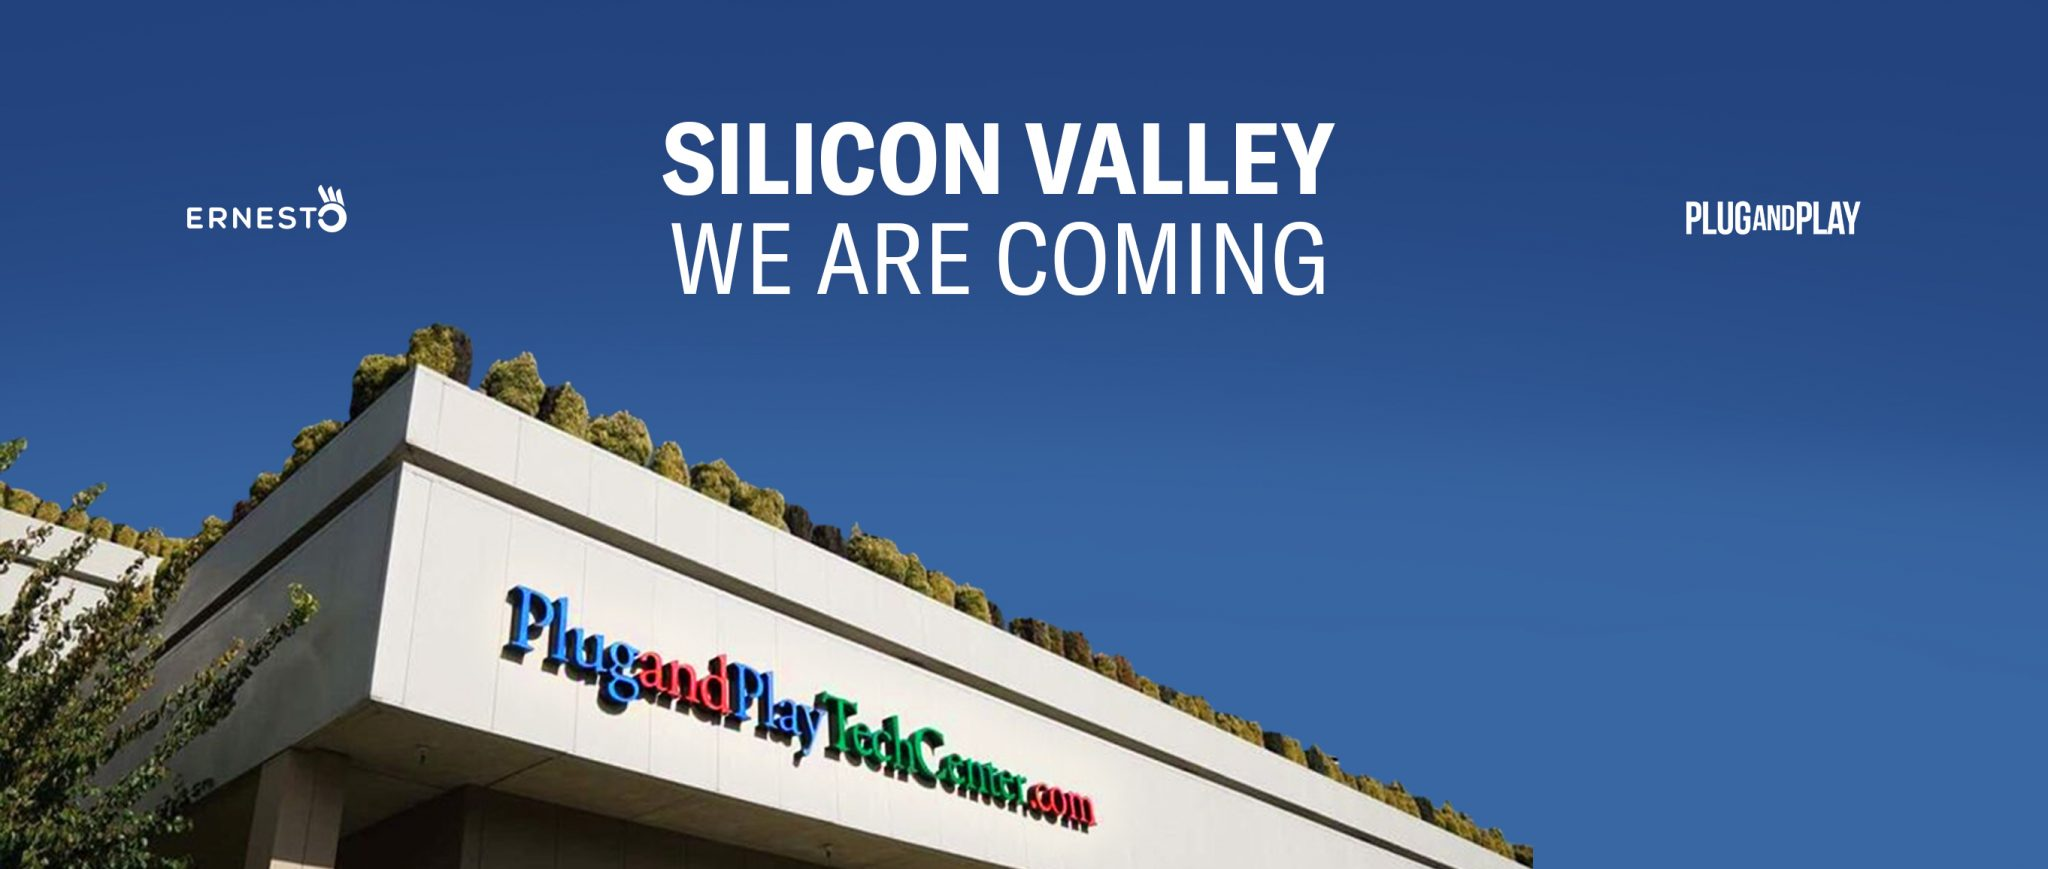 Plug and play in Silicon Valley